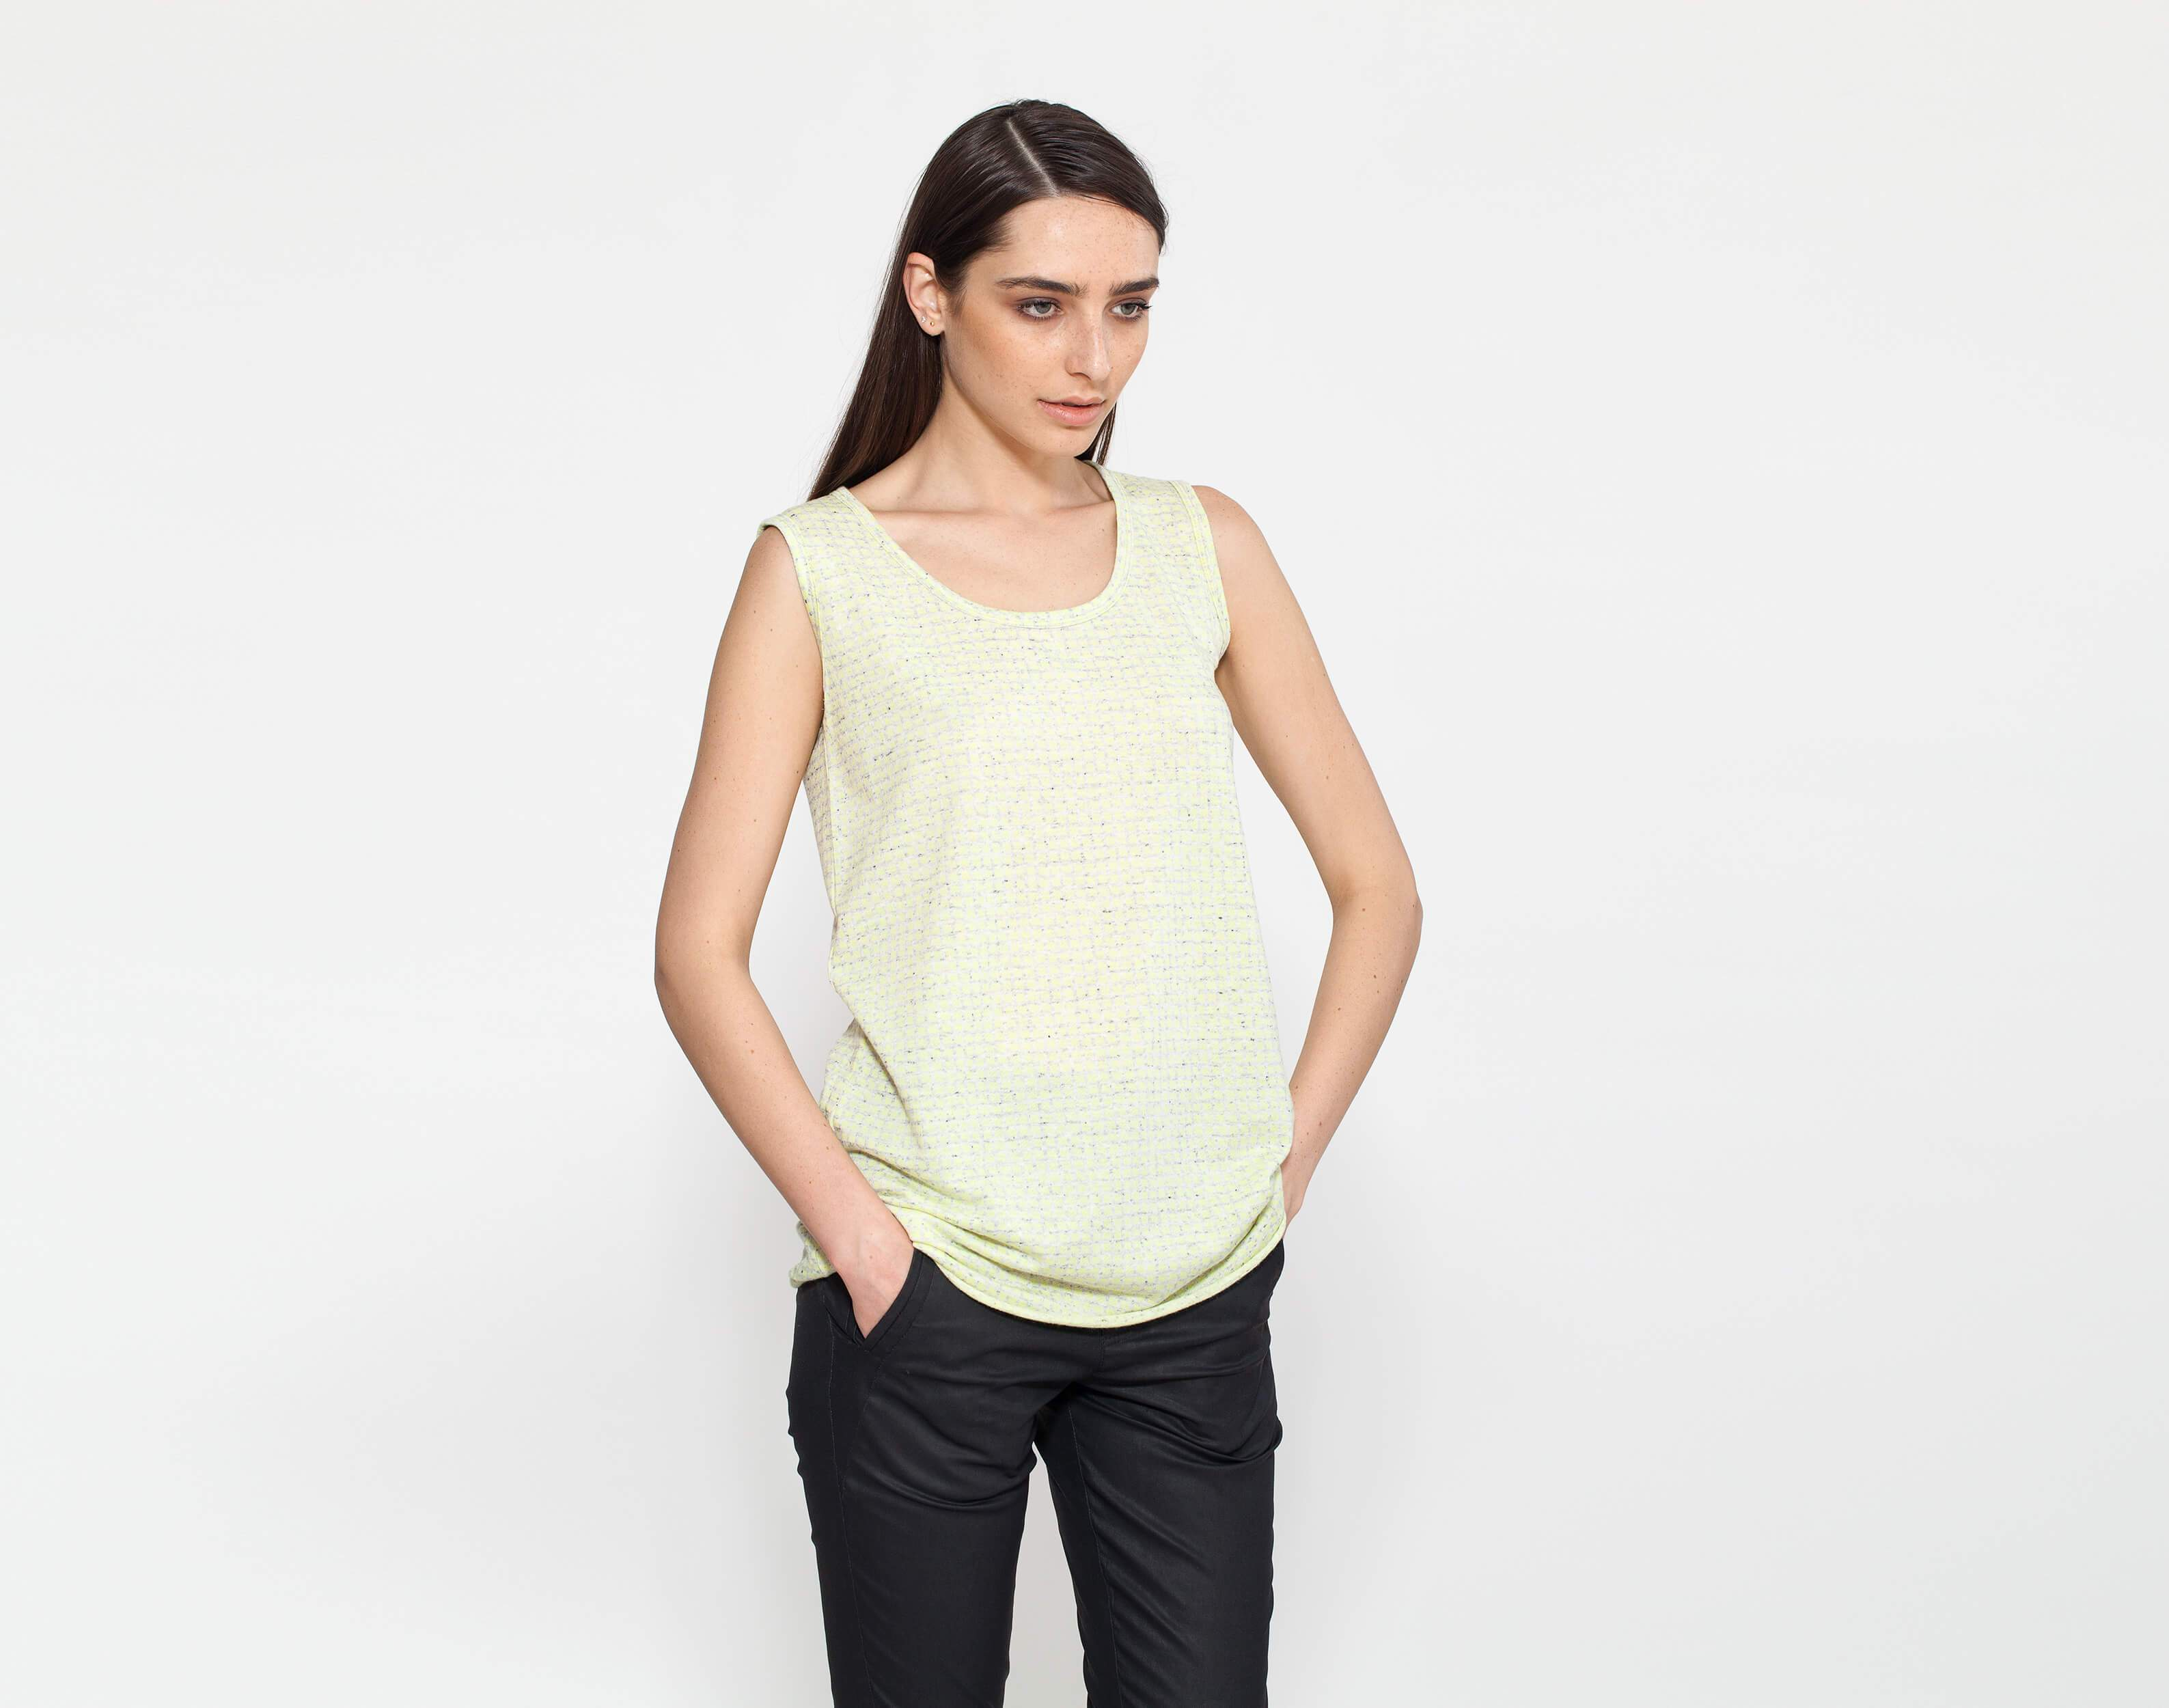 Sleeveless Yellow Tank Top